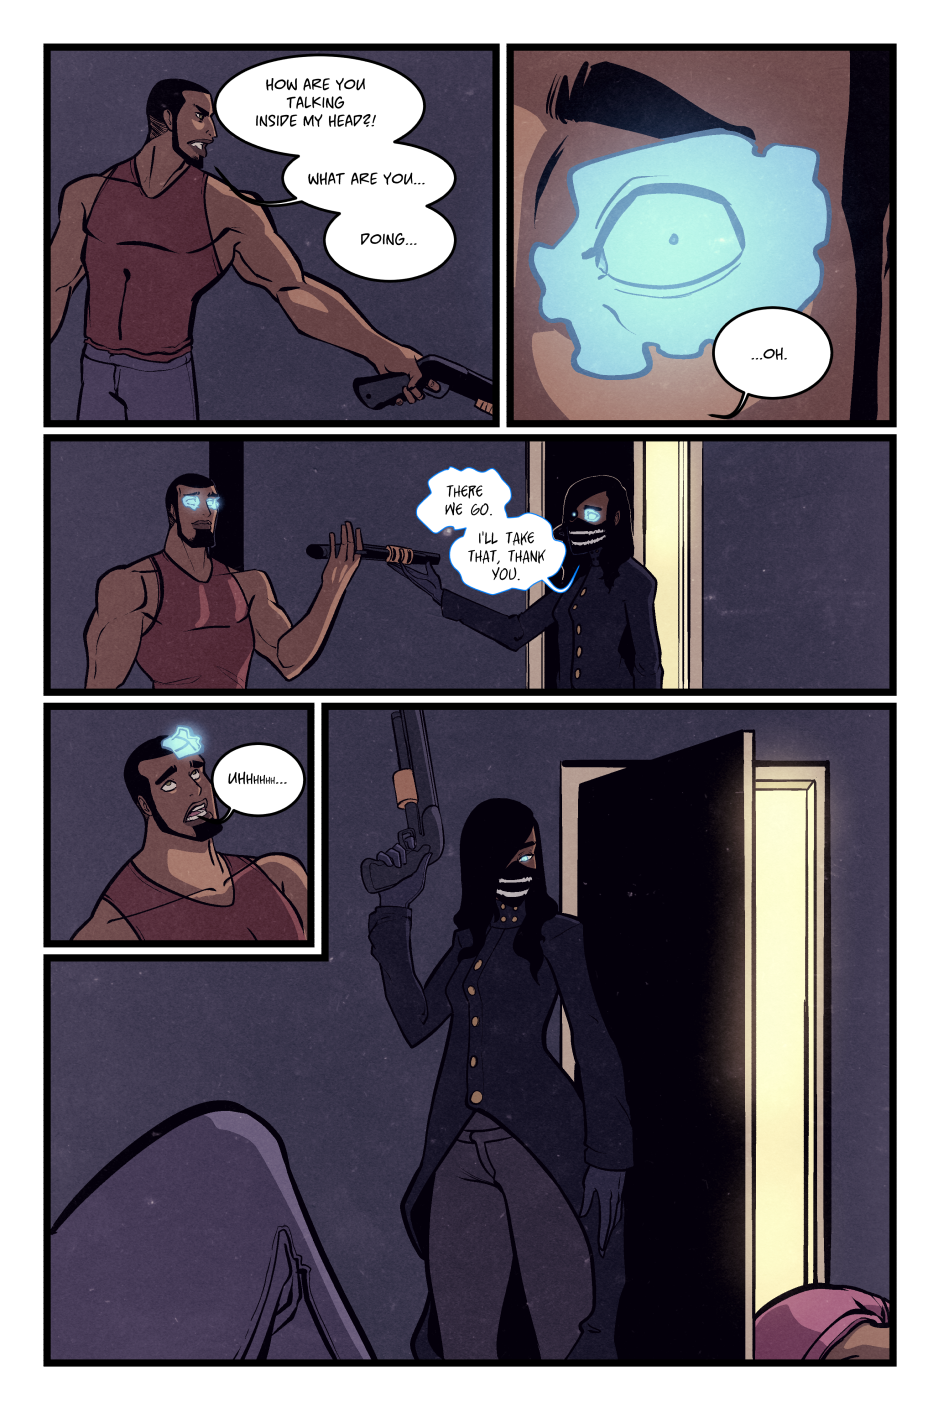 ToW01pg07